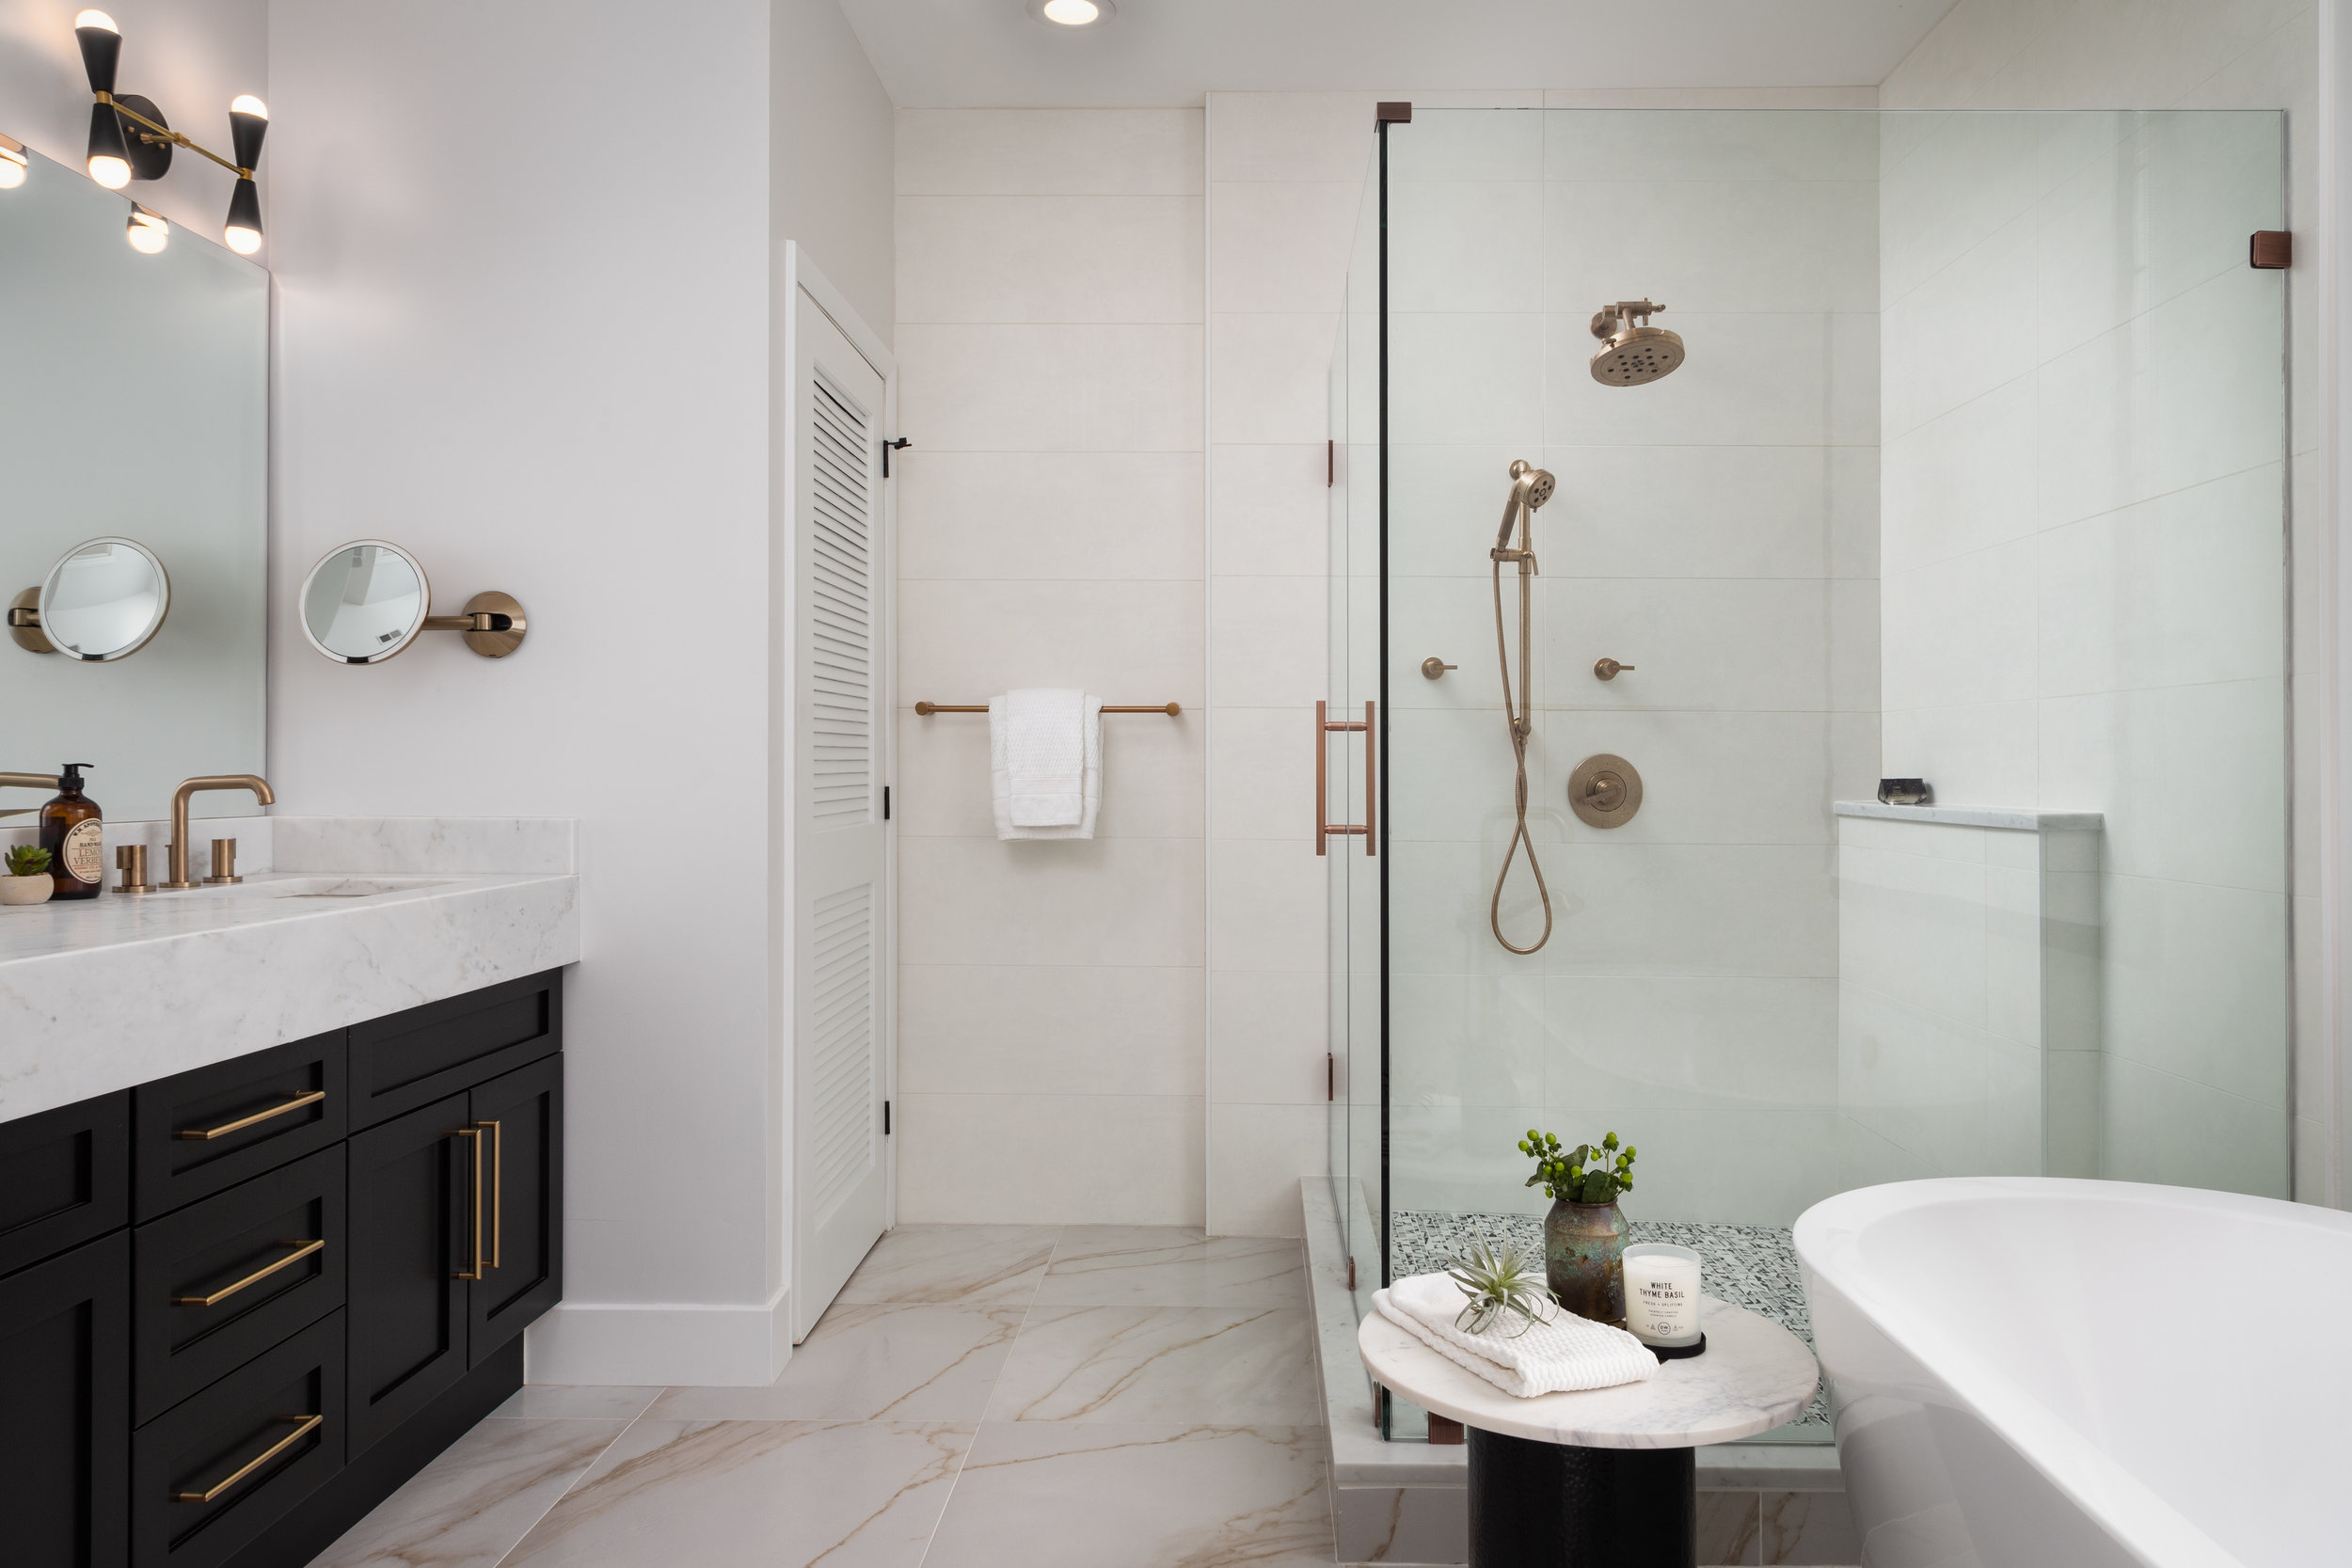 The Master Bathroom had to be the most special one in the house. We carried in a marble looking porcelain tile floor with a complementing wall tile that resembles a creamy Venetian plaster. The corner shower has a textured tile on the floor and a ledge built out on the side for toiletries.  Brizo  plumbing fixtures add a luxurious touch to the room.